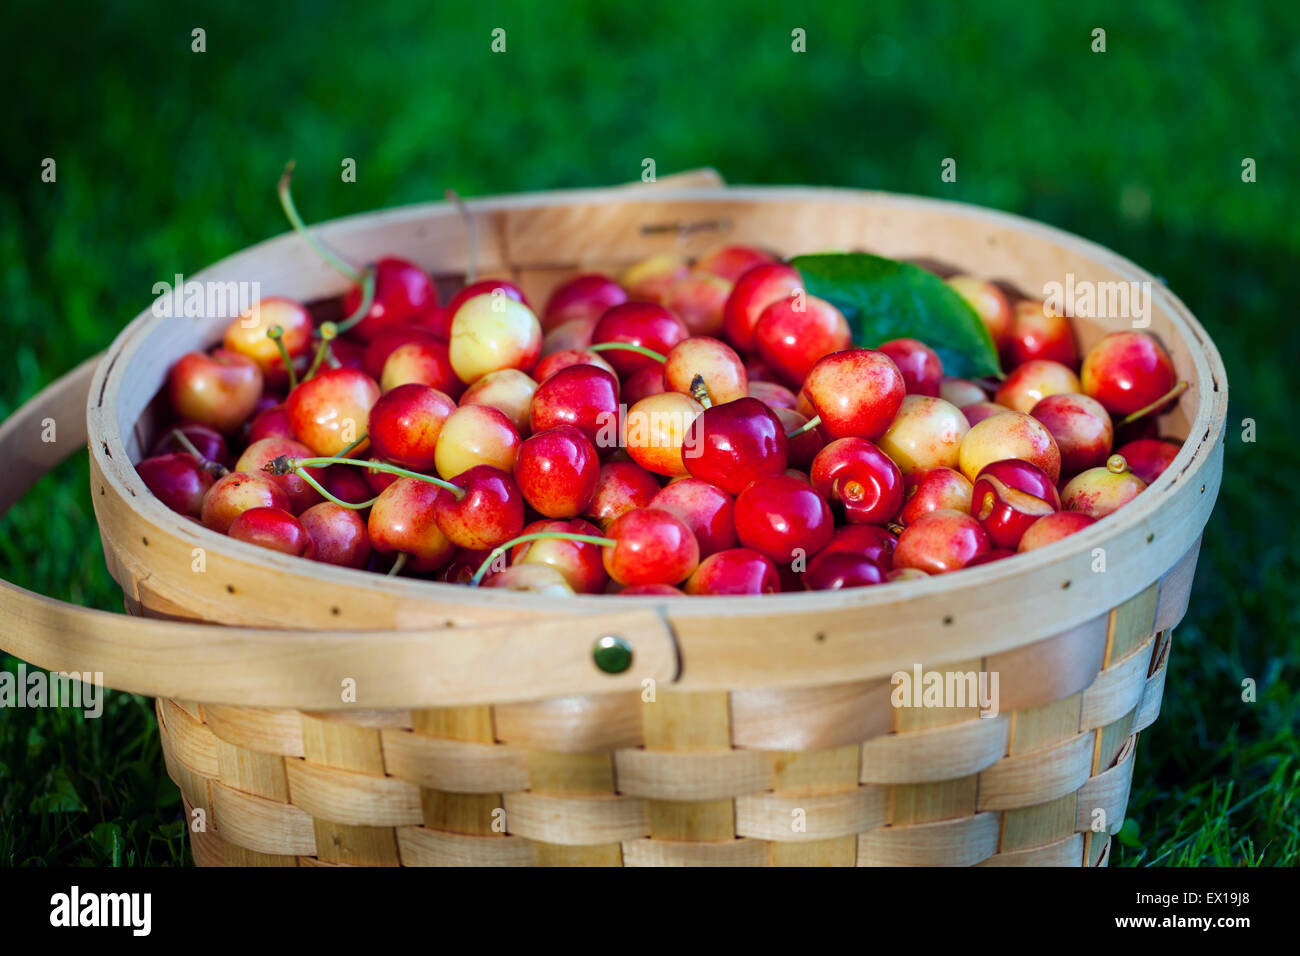 Basket full of sweet cherries - Stock Image